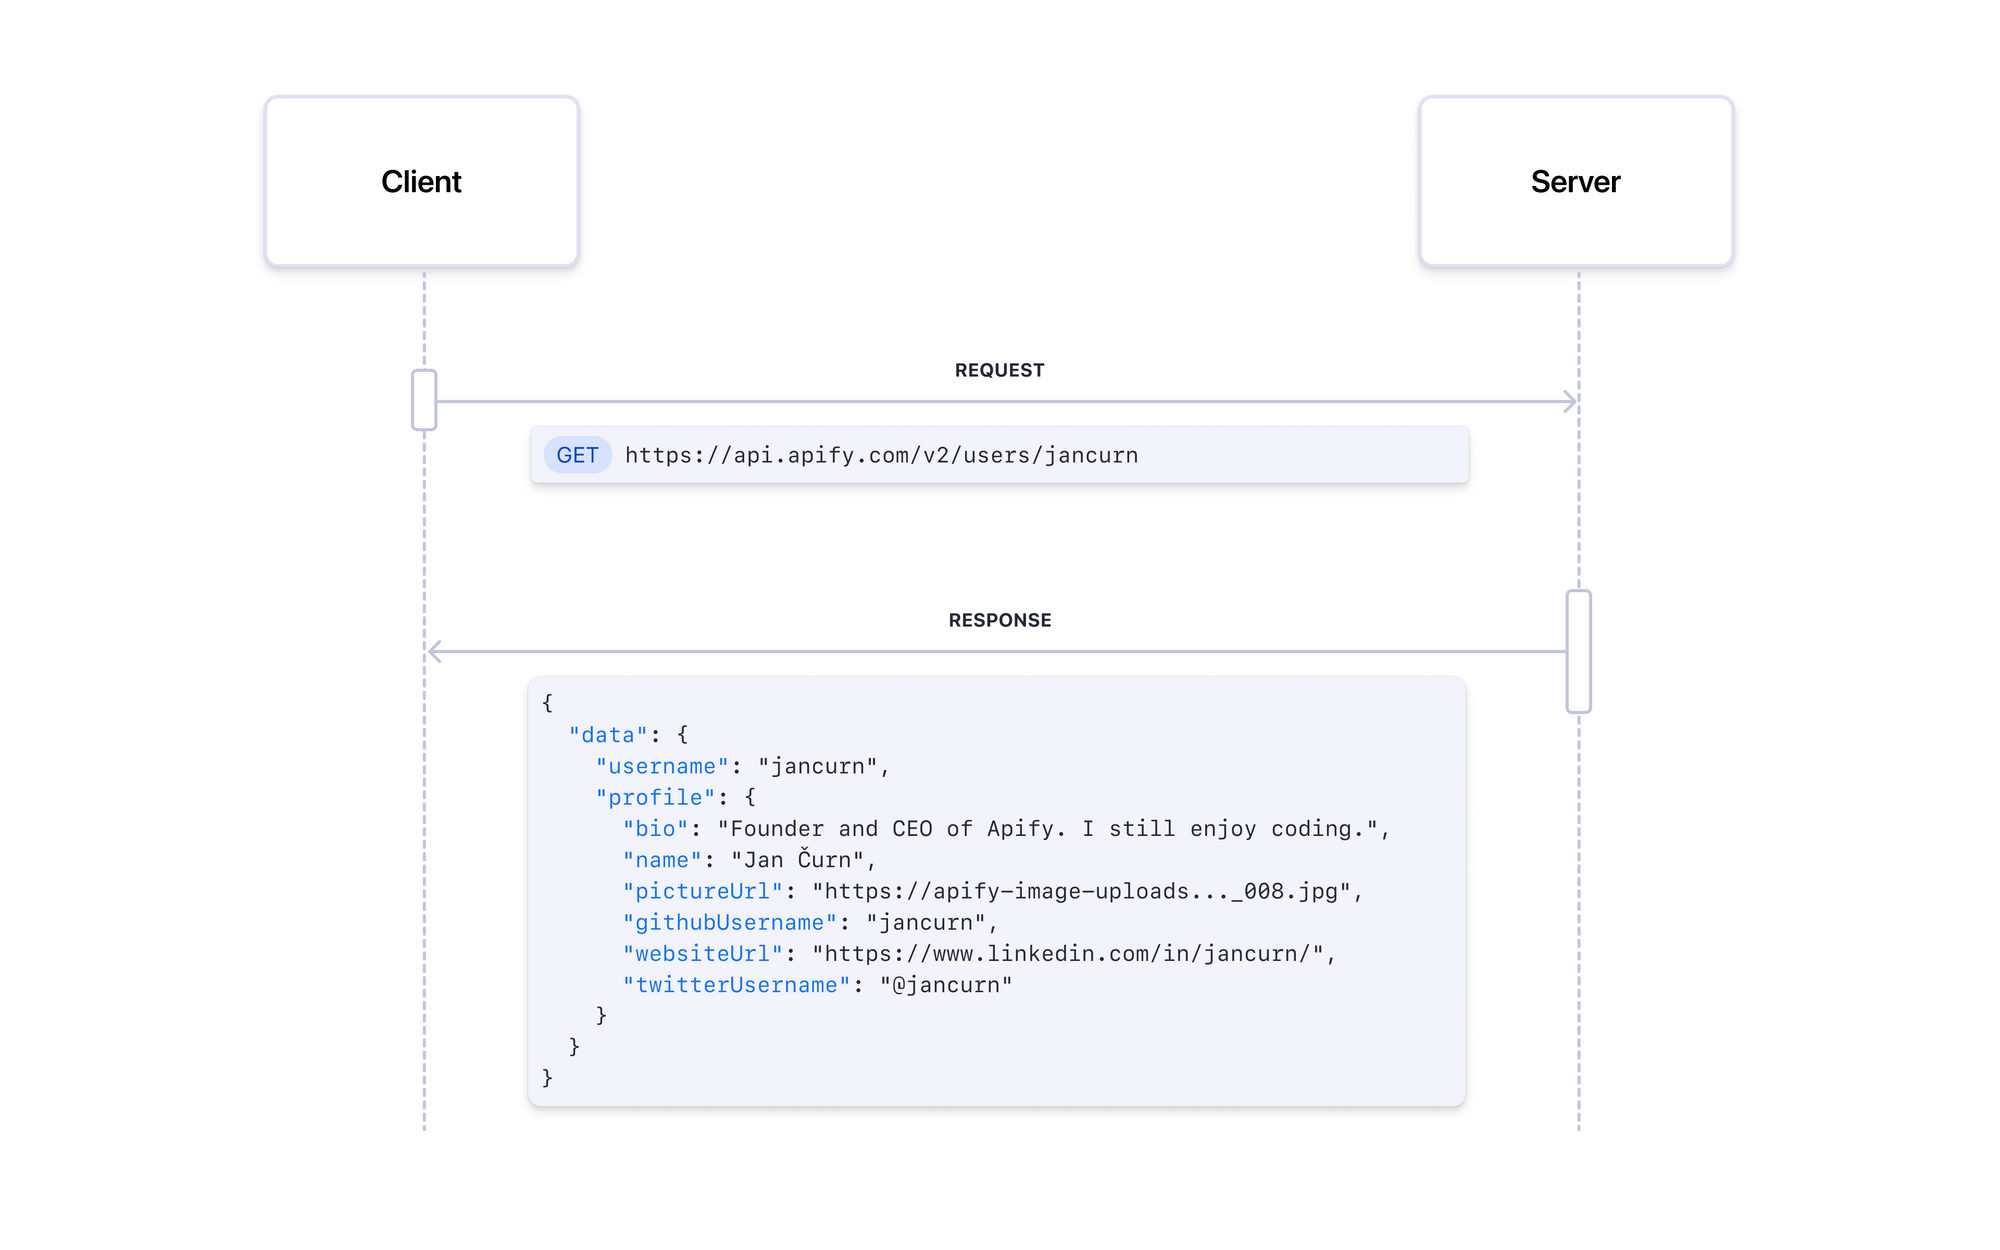 Diagram showing how a client sends an API call to a server and gets a response with user data